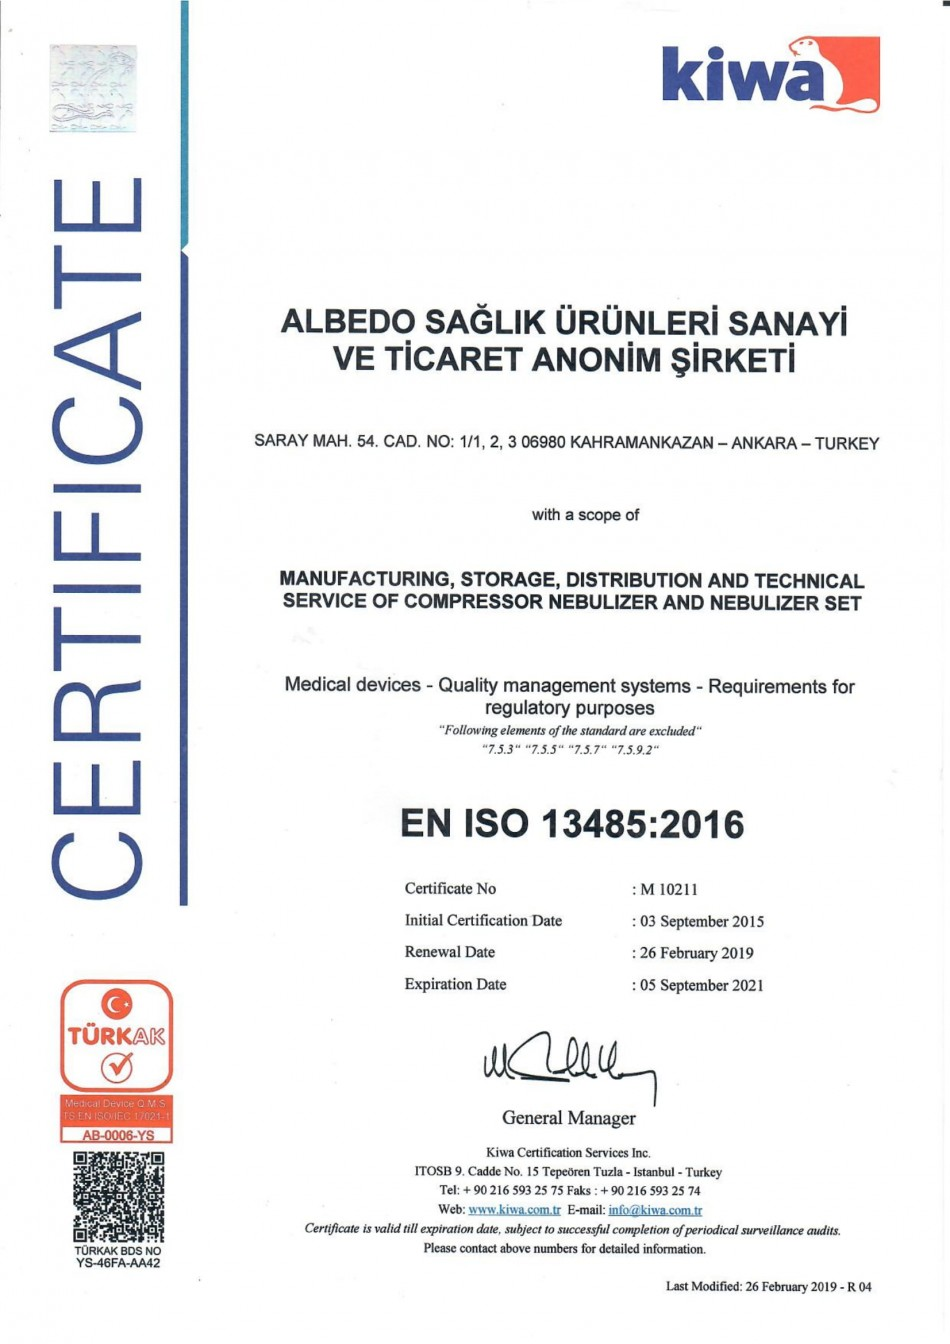 ALBEDO MEDICAL PRODUCTS - CERTIFICATES EN ISO 13485:2016